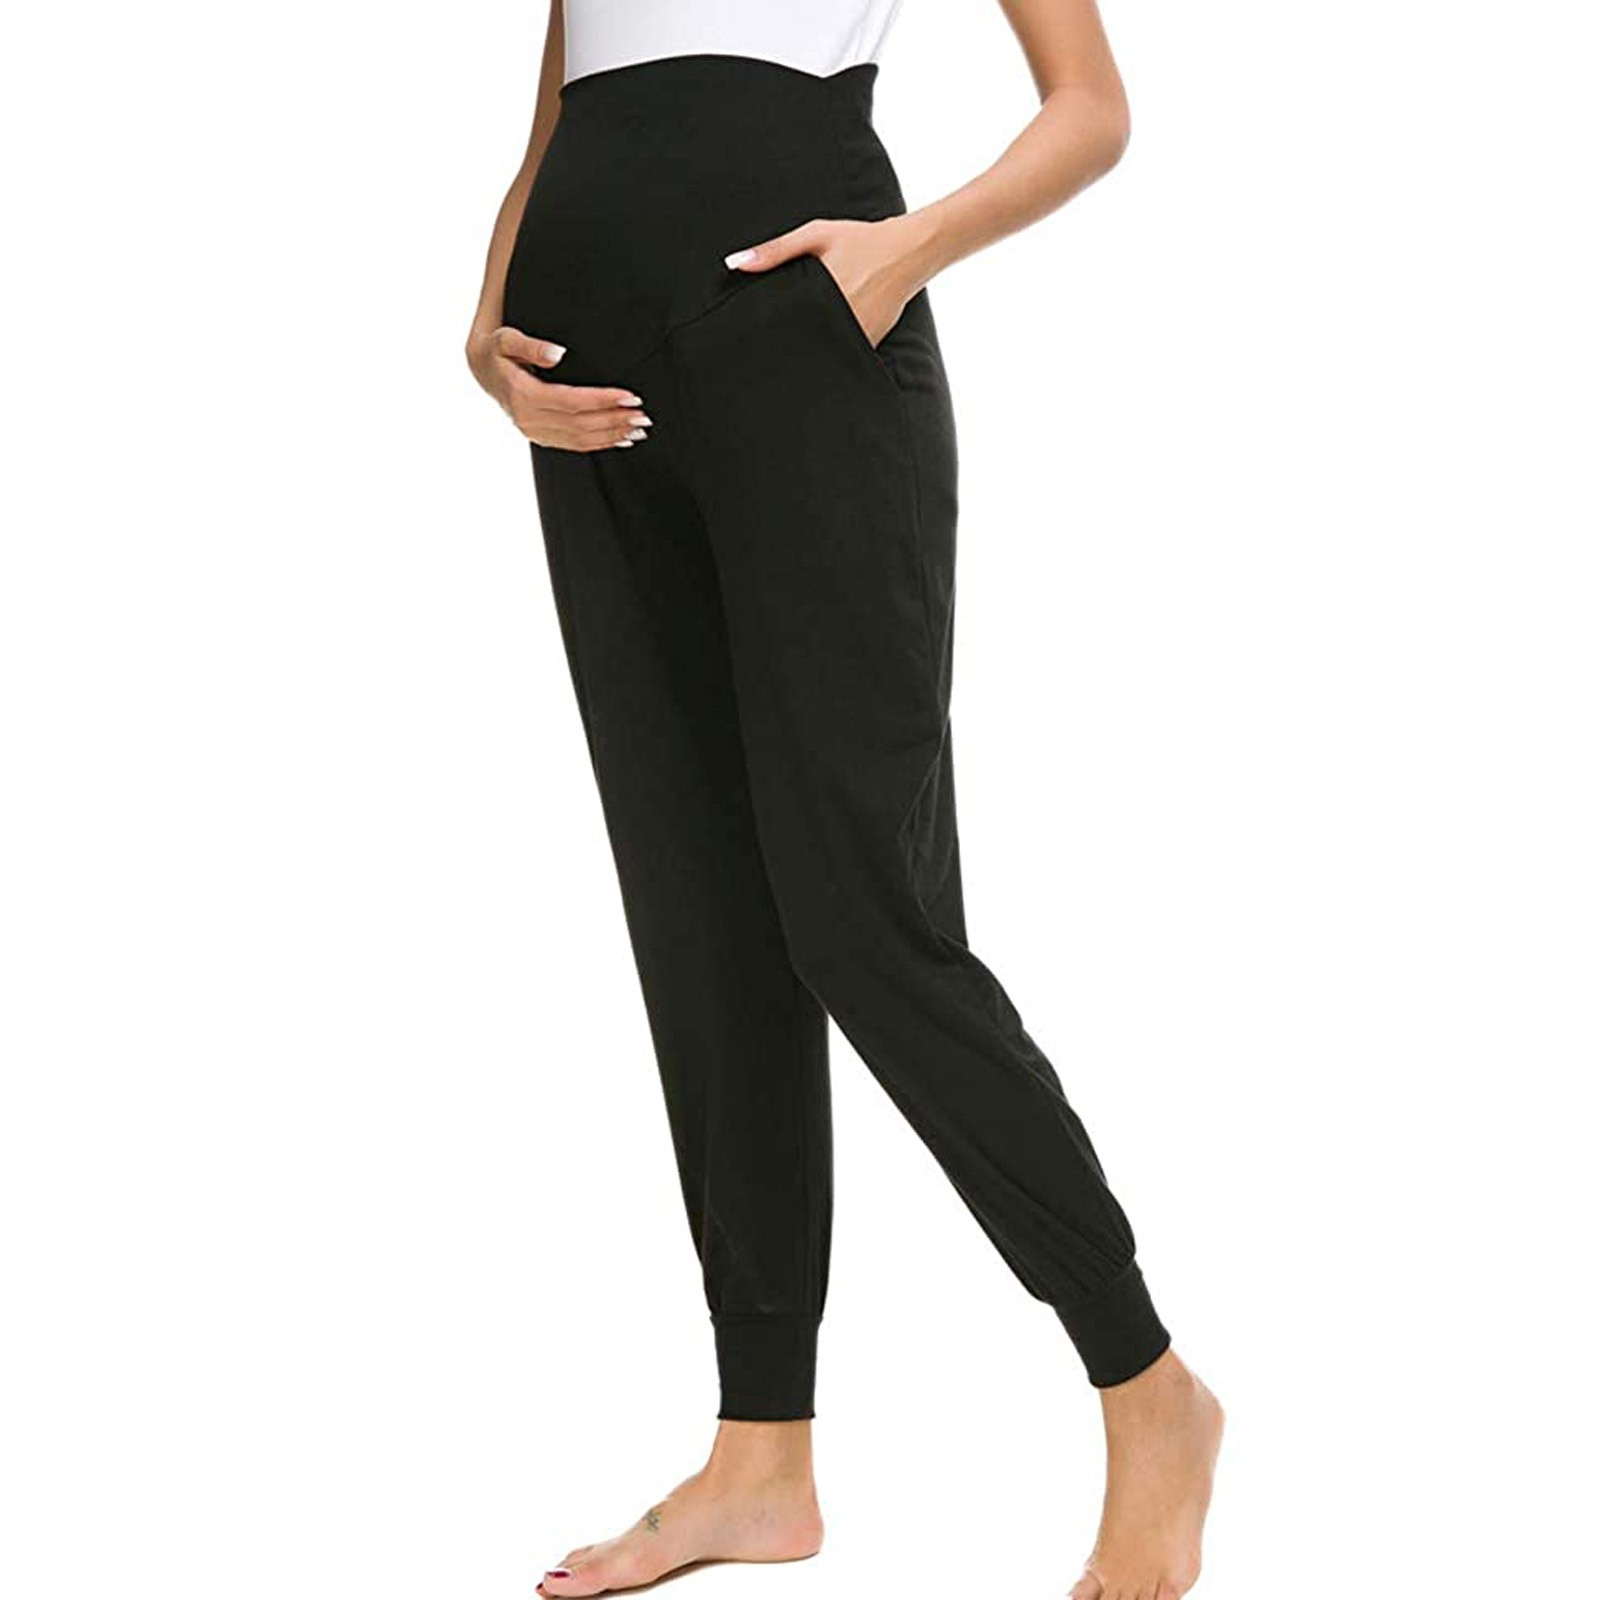 Women's Solid Color Maternity Pants With Pockets Soft Comfortable Pregnant Women Leggings Pregnancy Pants Maternity Clothing